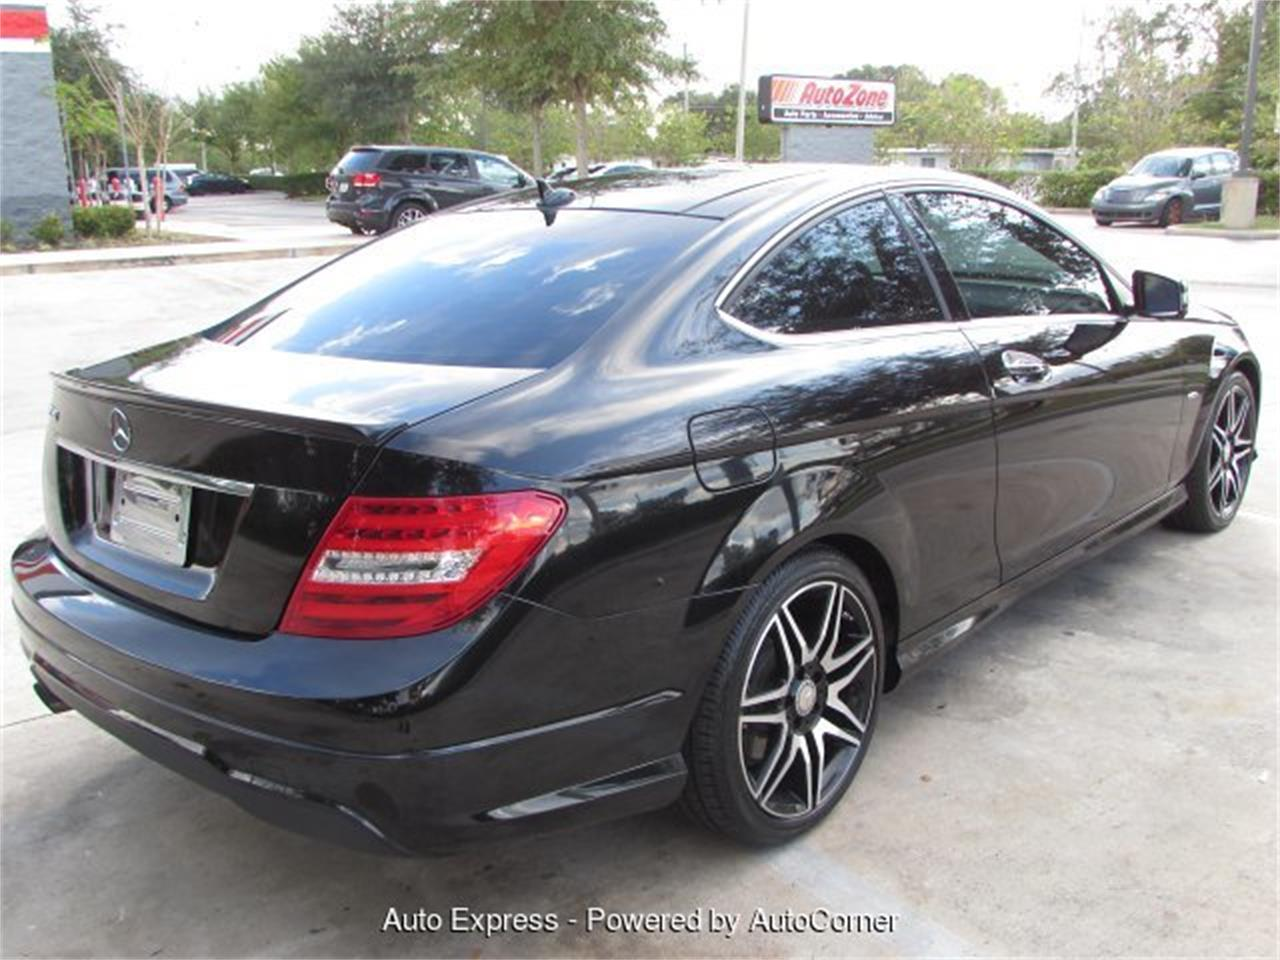 2013 Mercedes-Benz C250 for sale in Orlando, FL – photo 8